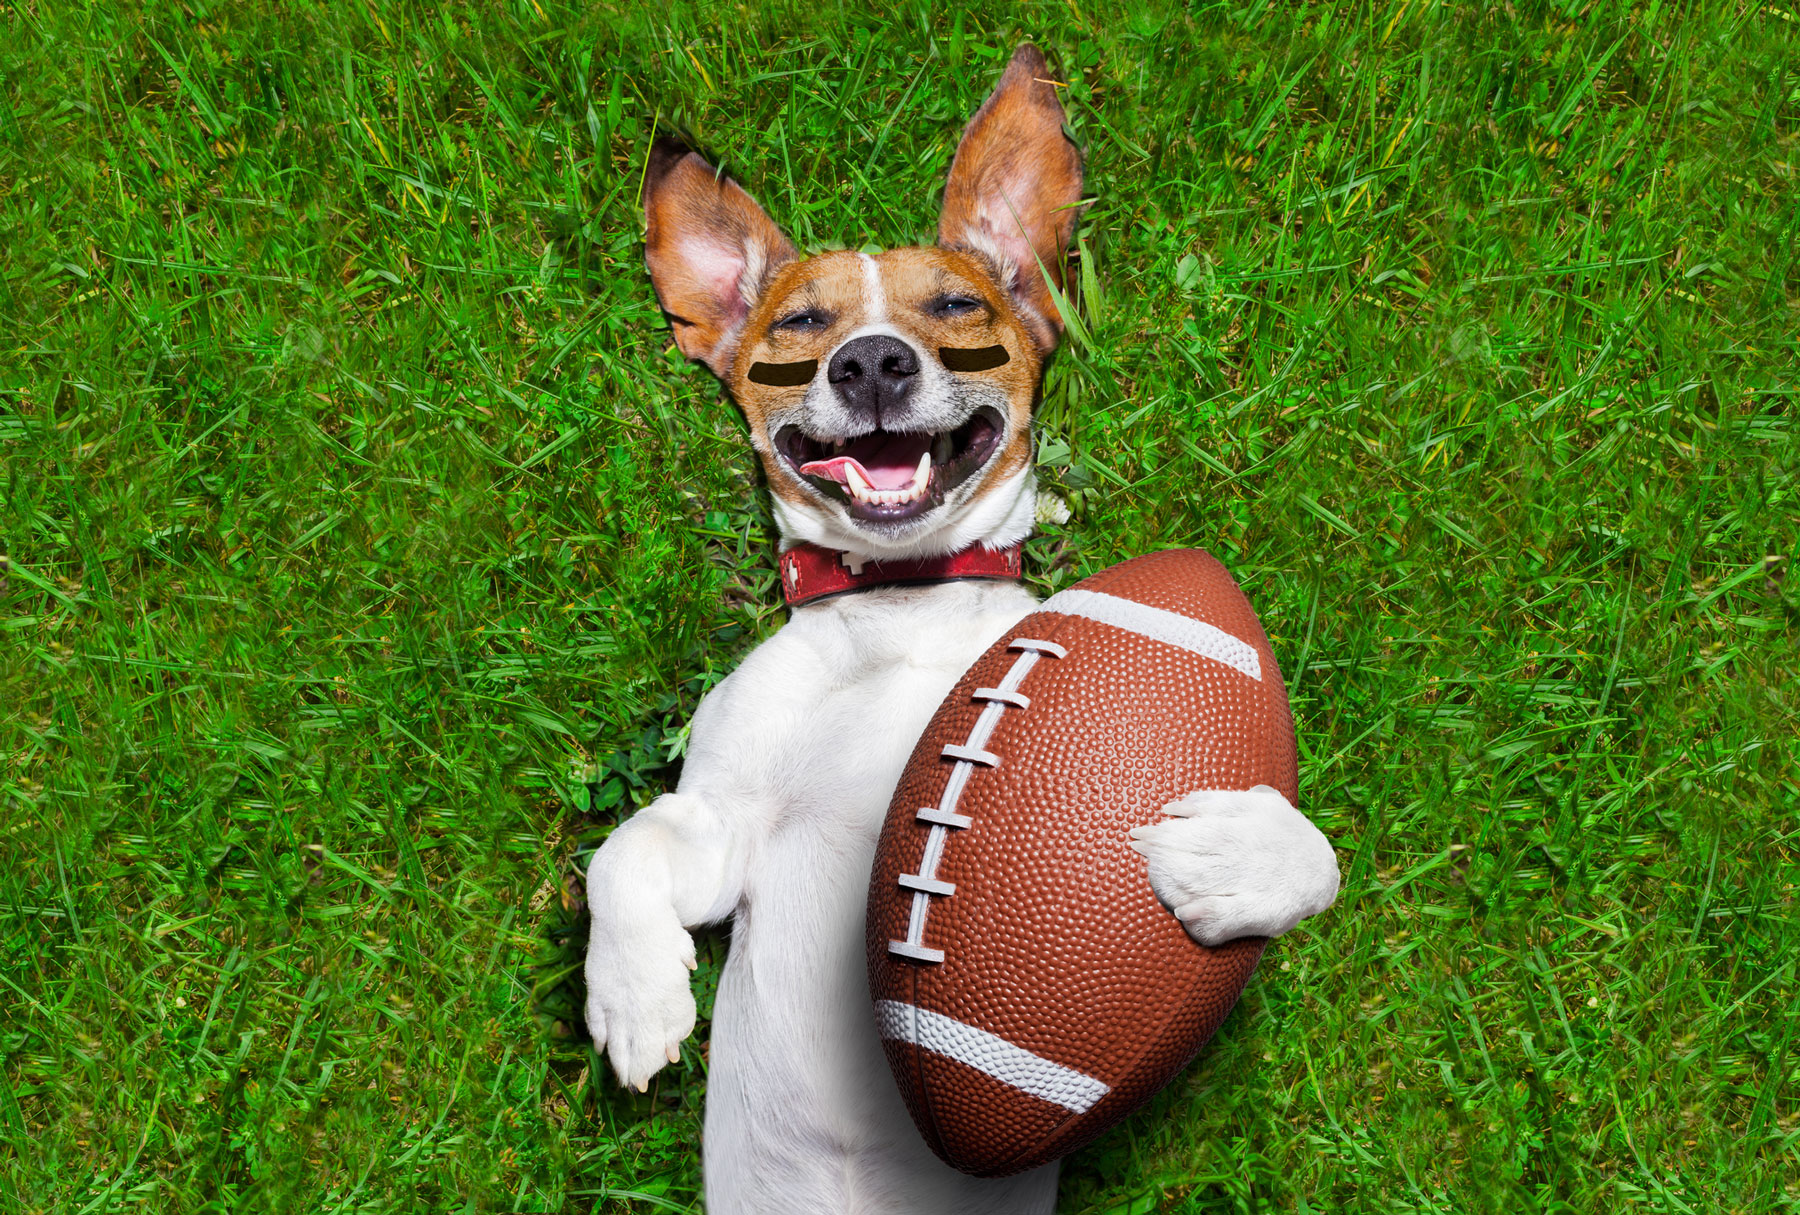 Fur-Friendly Ways to Enjoy Sunday's Big Game